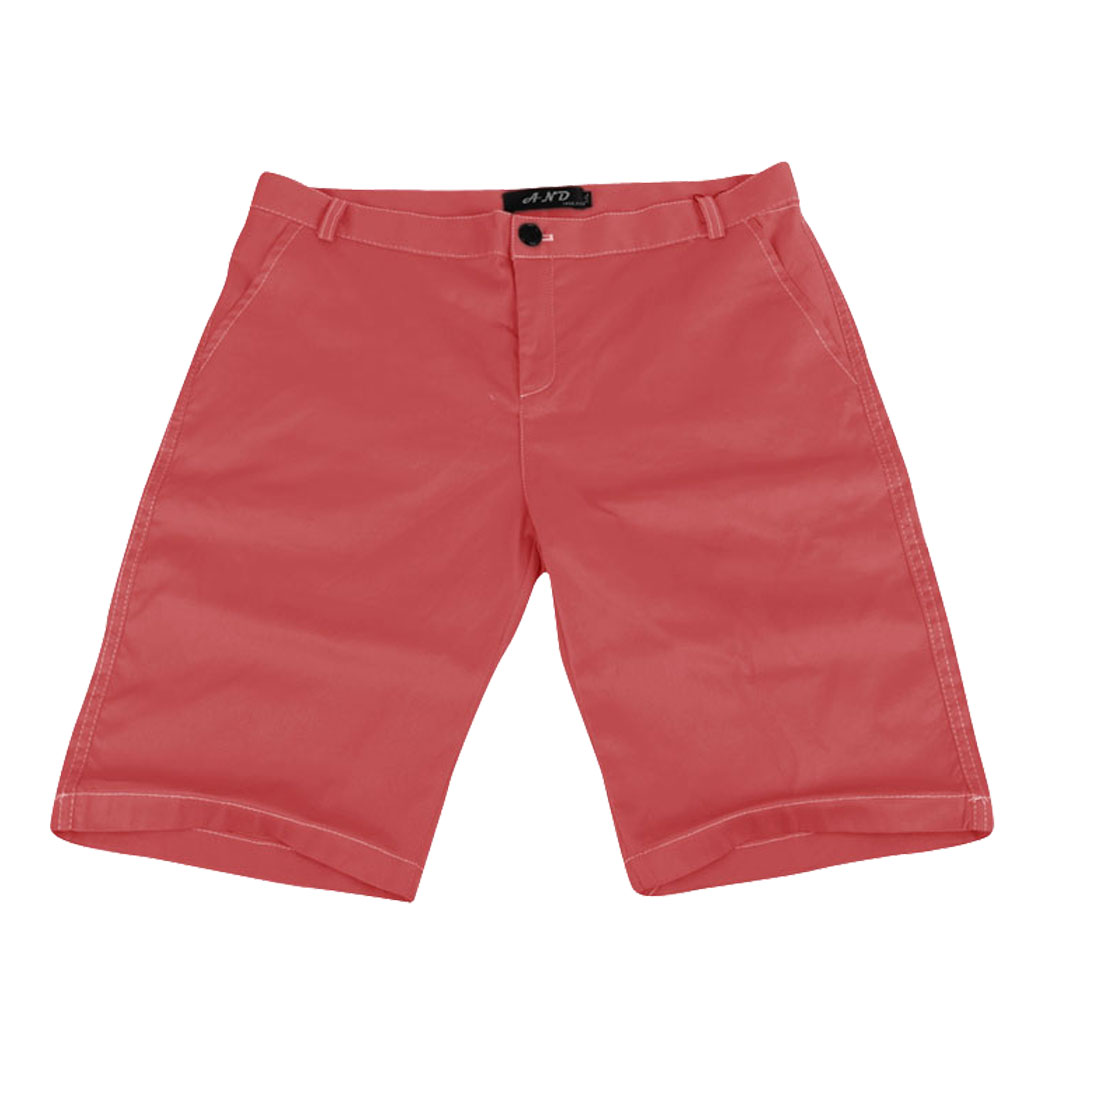 Men Hidden Zipper Back Pockets Slant Pockets Shorts Watermelon Red W31